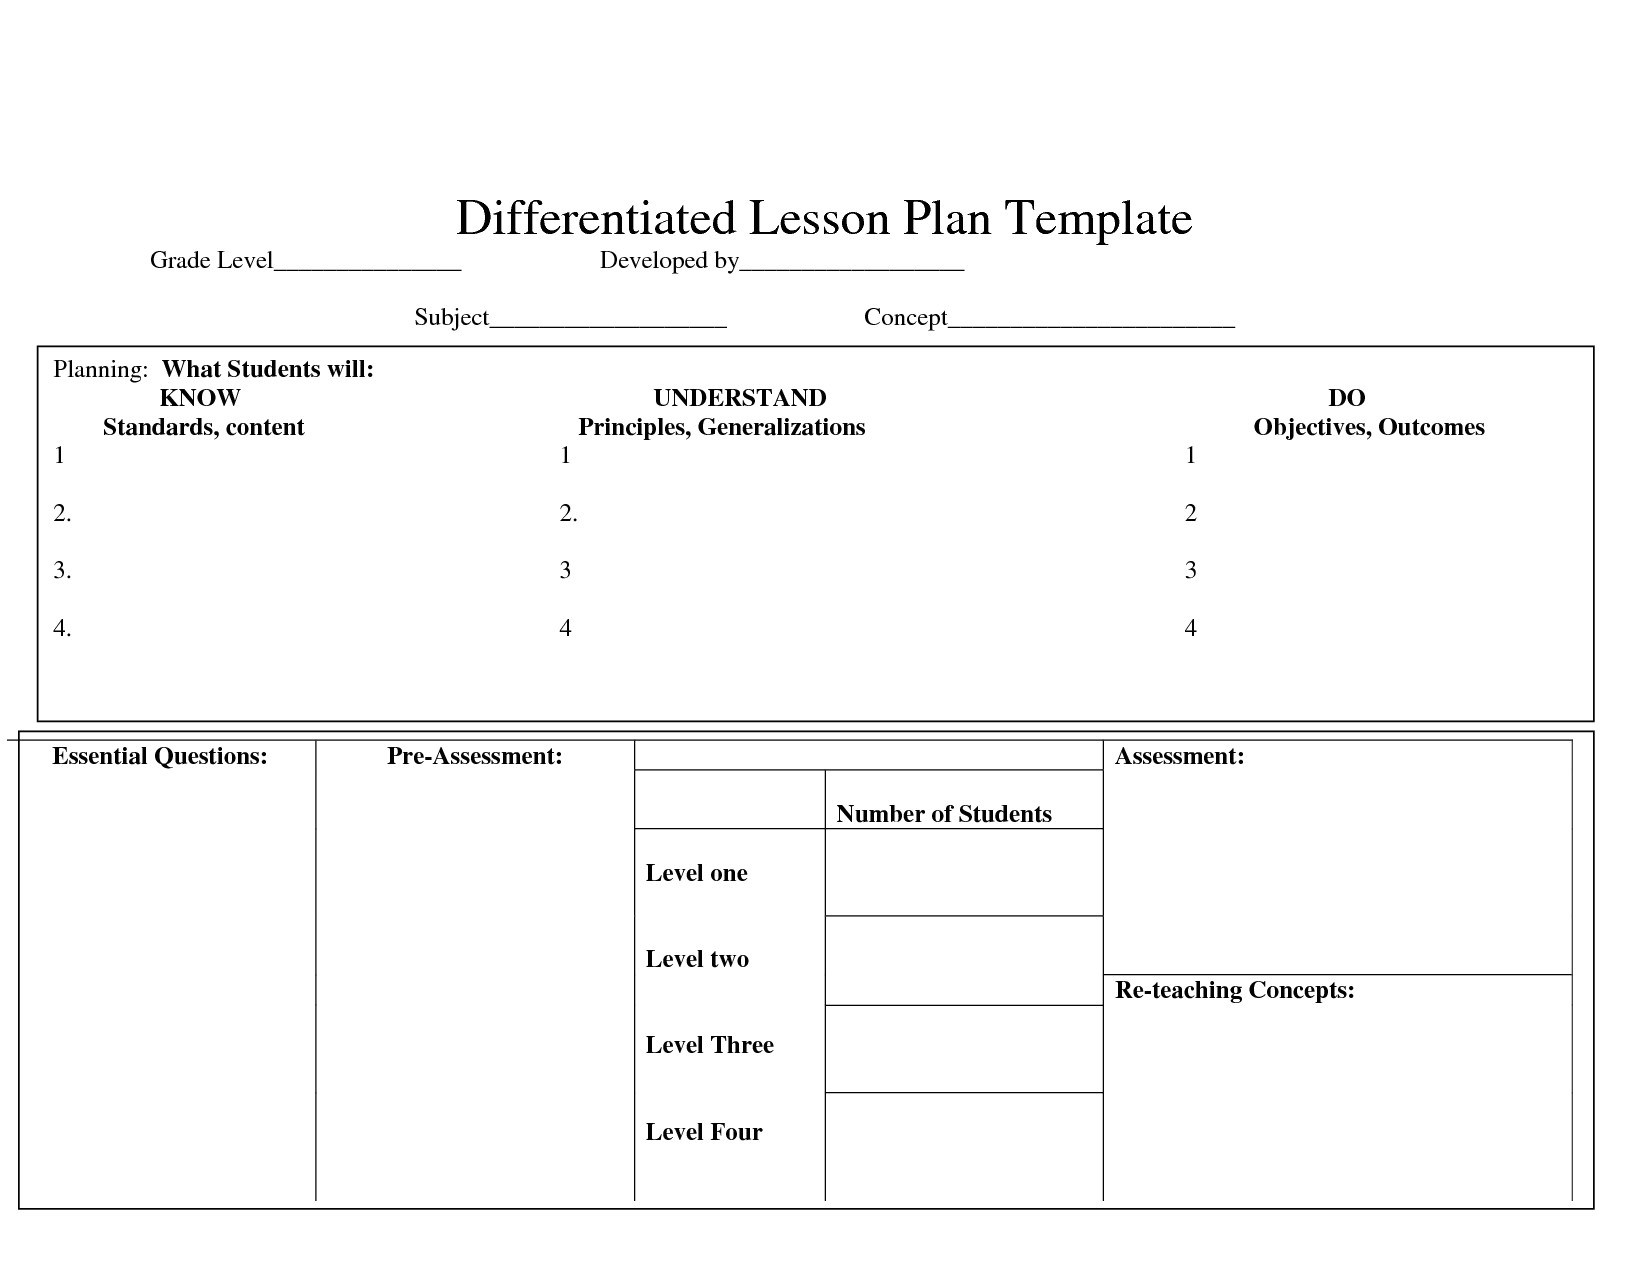 Differentiation Lesson Plan Template Differentiatedlearning Just Another WordPress Com Site